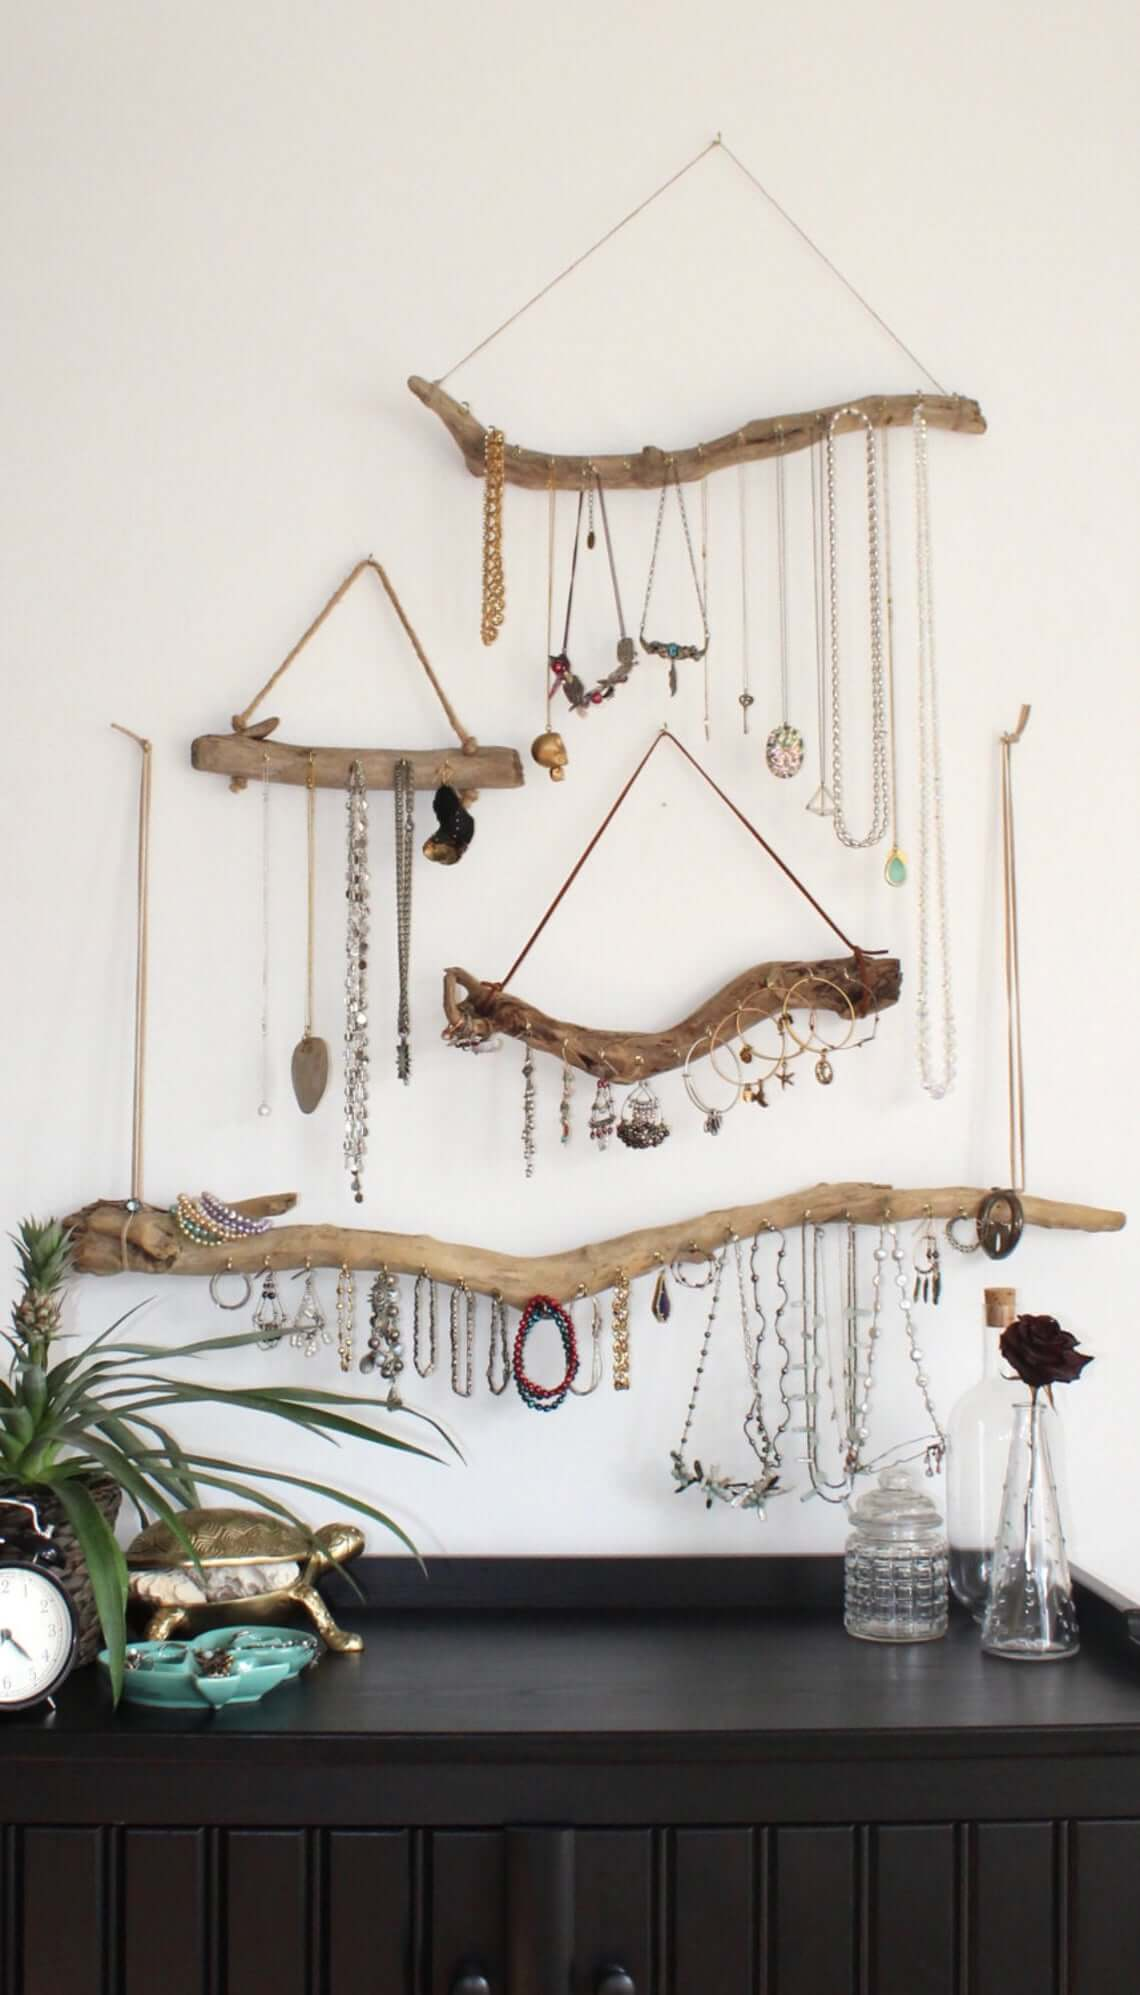 Driftwood Jewelry Organizer for Small Space Storage